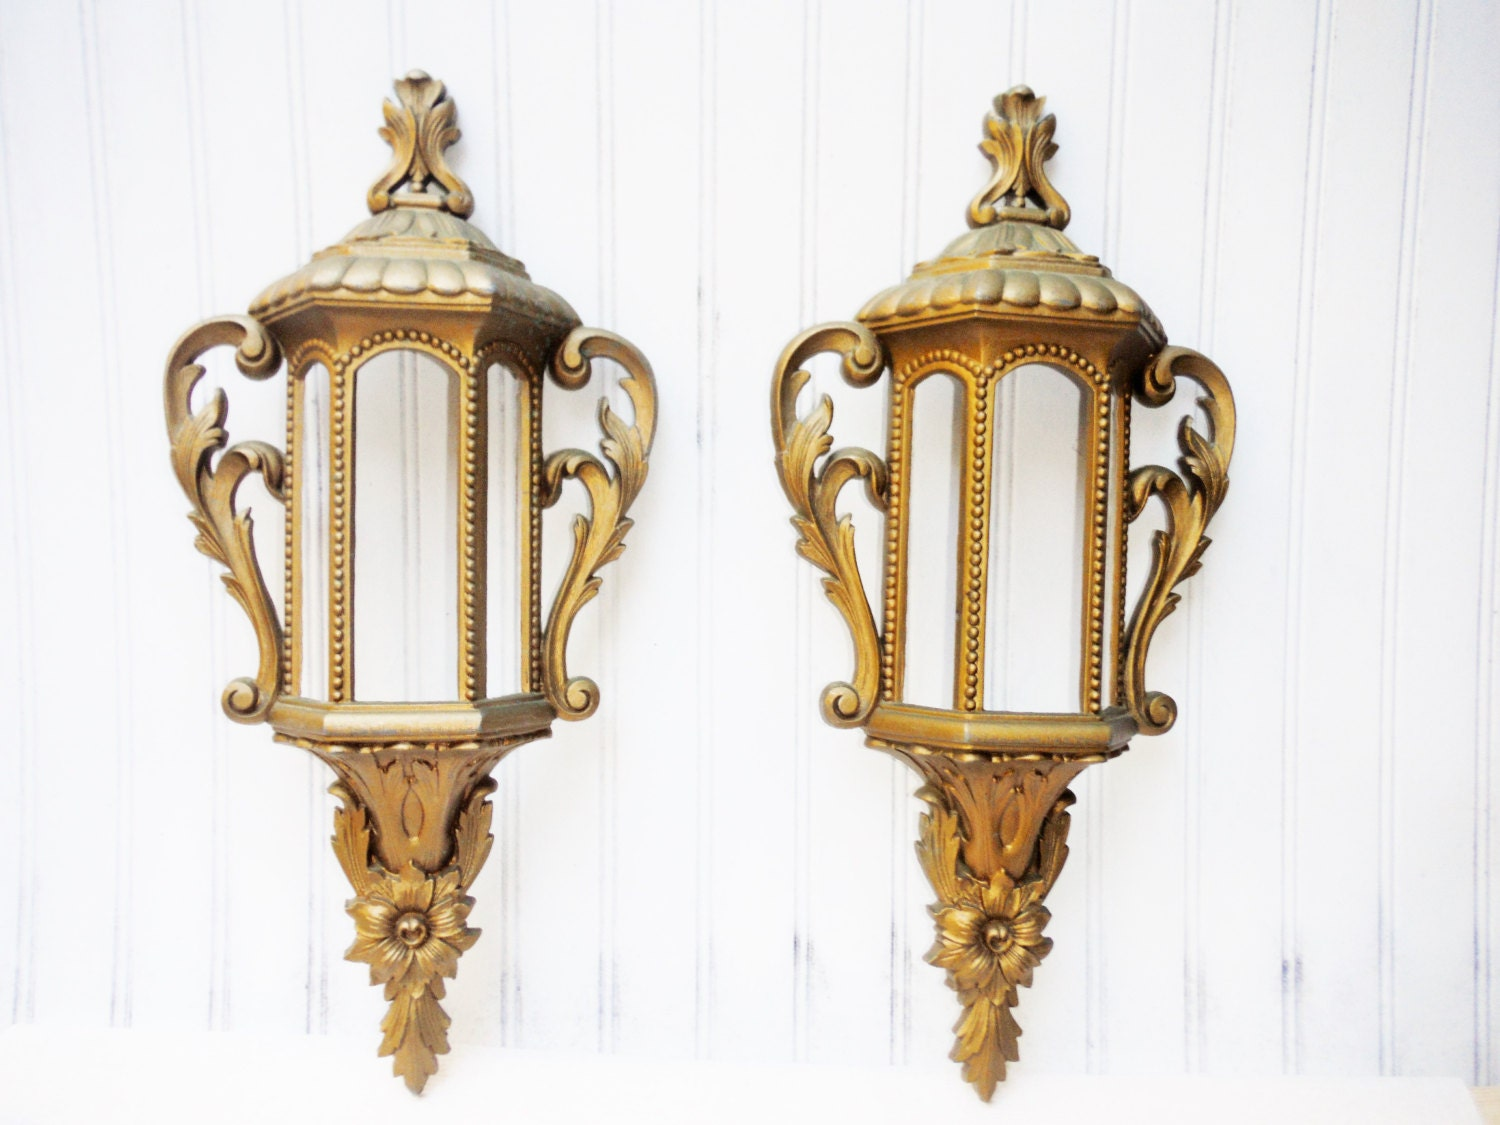 Wall Sconces Planters : Wall sconce planter lantern style french shabby vintage molded